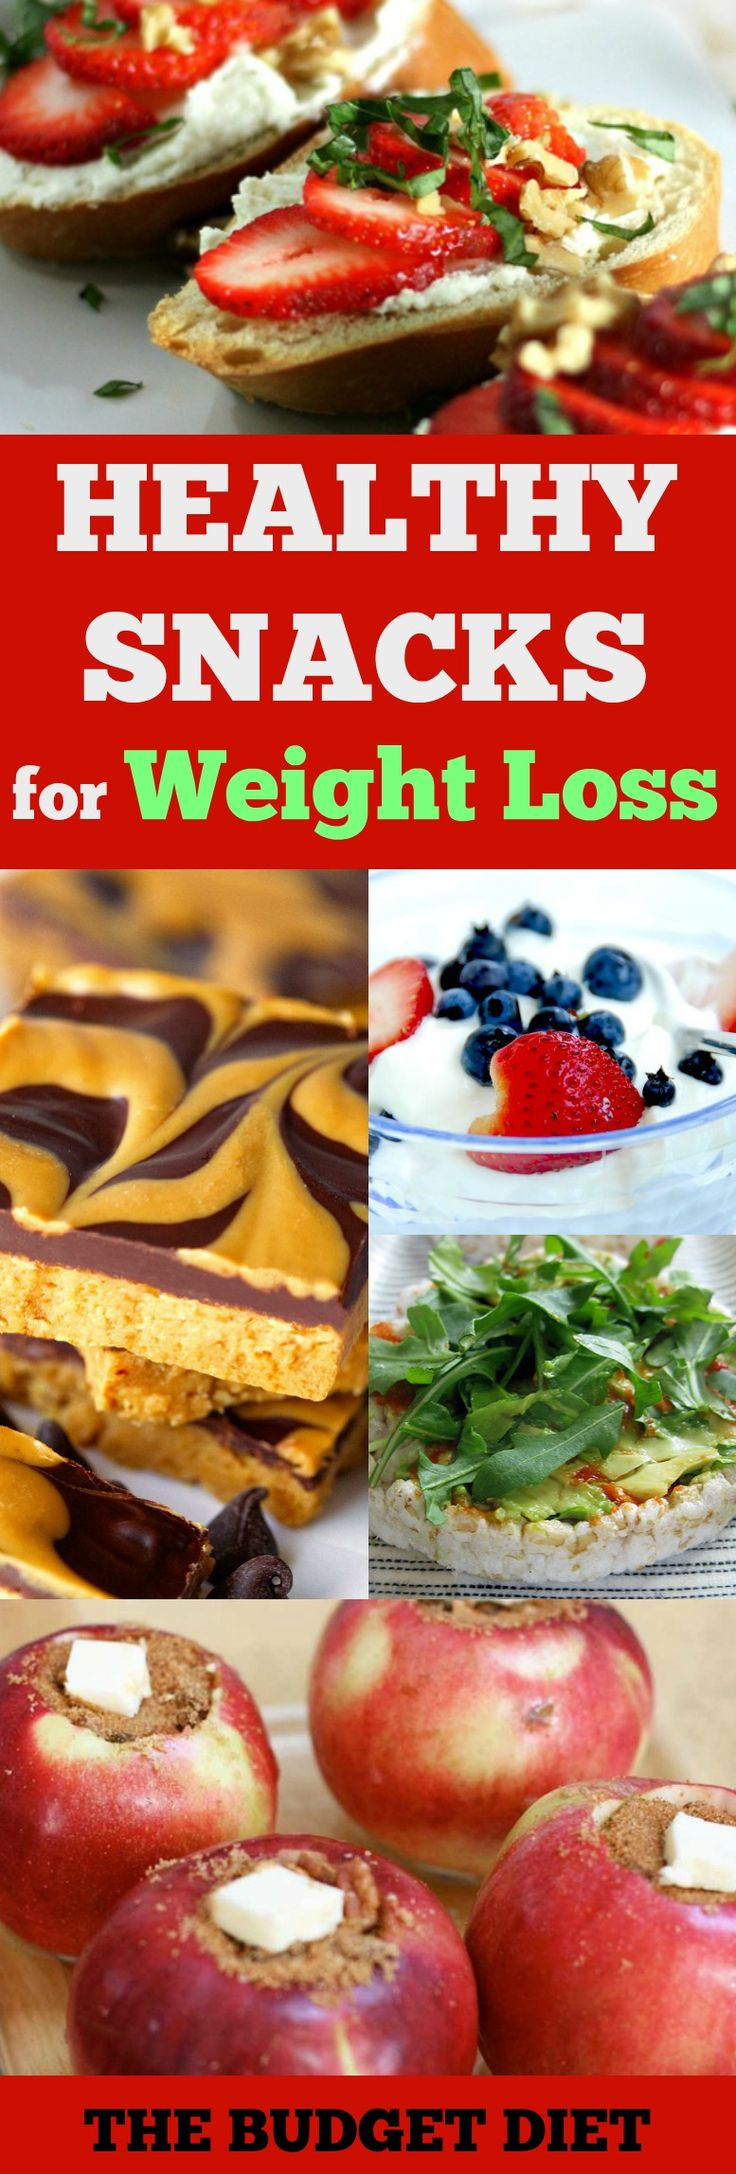 16 Best Healthy Snacks for Weight Loss   On A Budget Yummy & Easy Recipes Perfect for Picky Eaters!